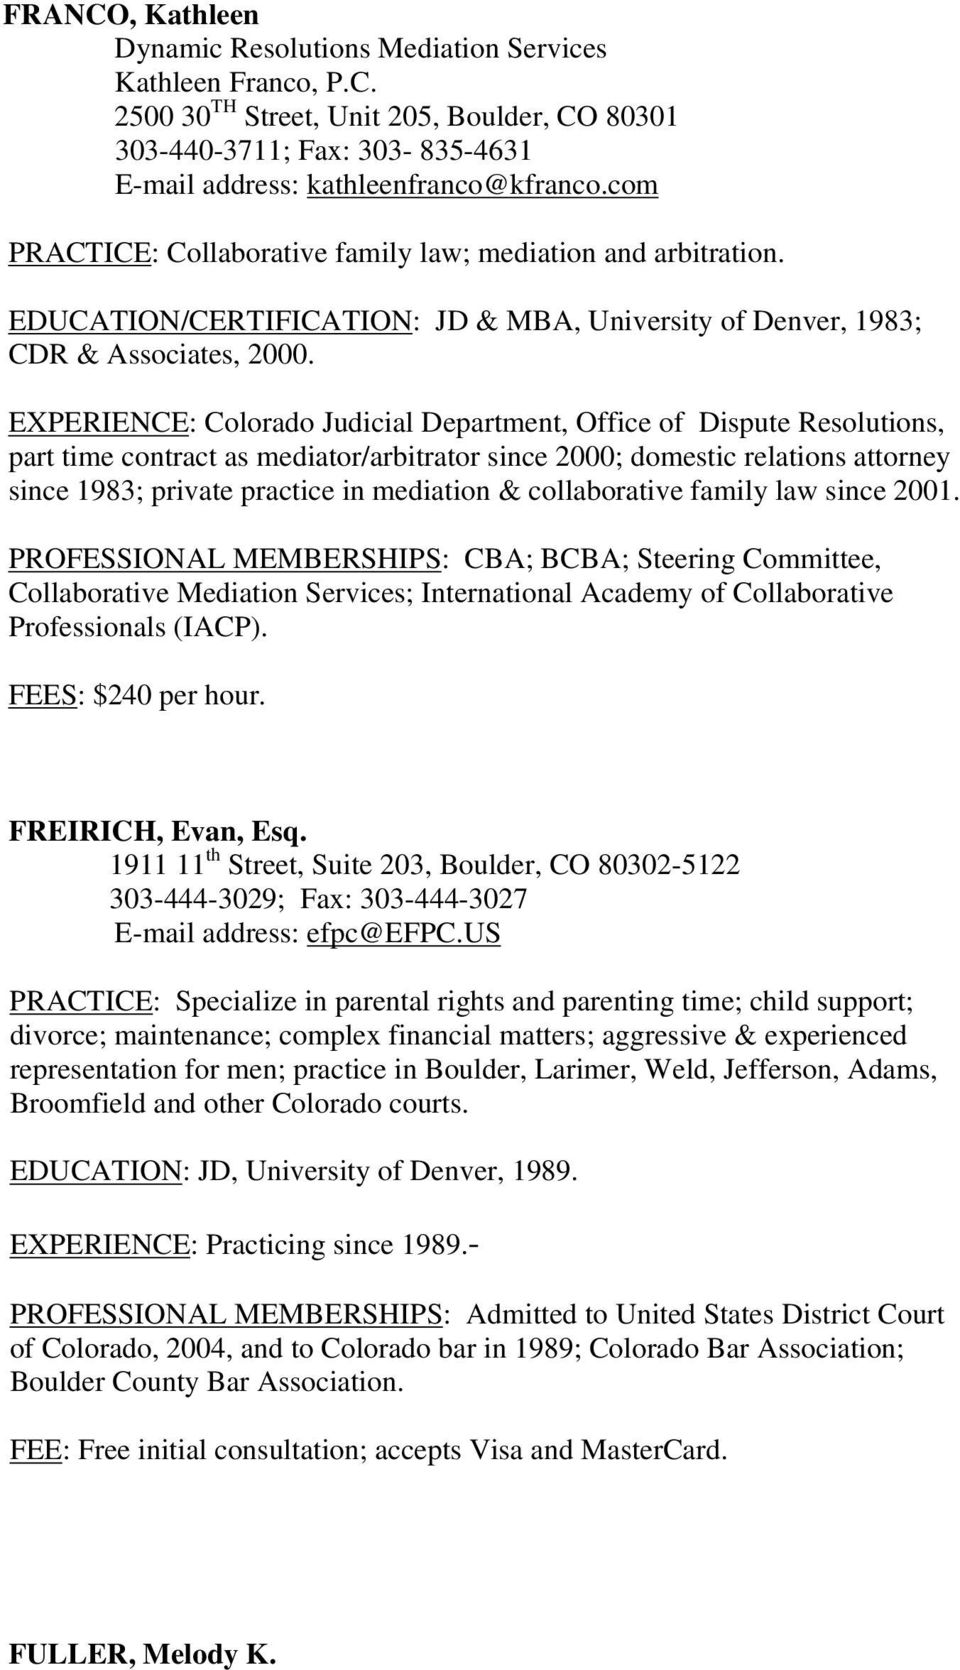 EXPERIENCE: Colorado Judicial Department, Office of Dispute Resolutions, part time contract as mediator/arbitrator since 2000; domestic relations attorney since 1983; private practice in mediation &